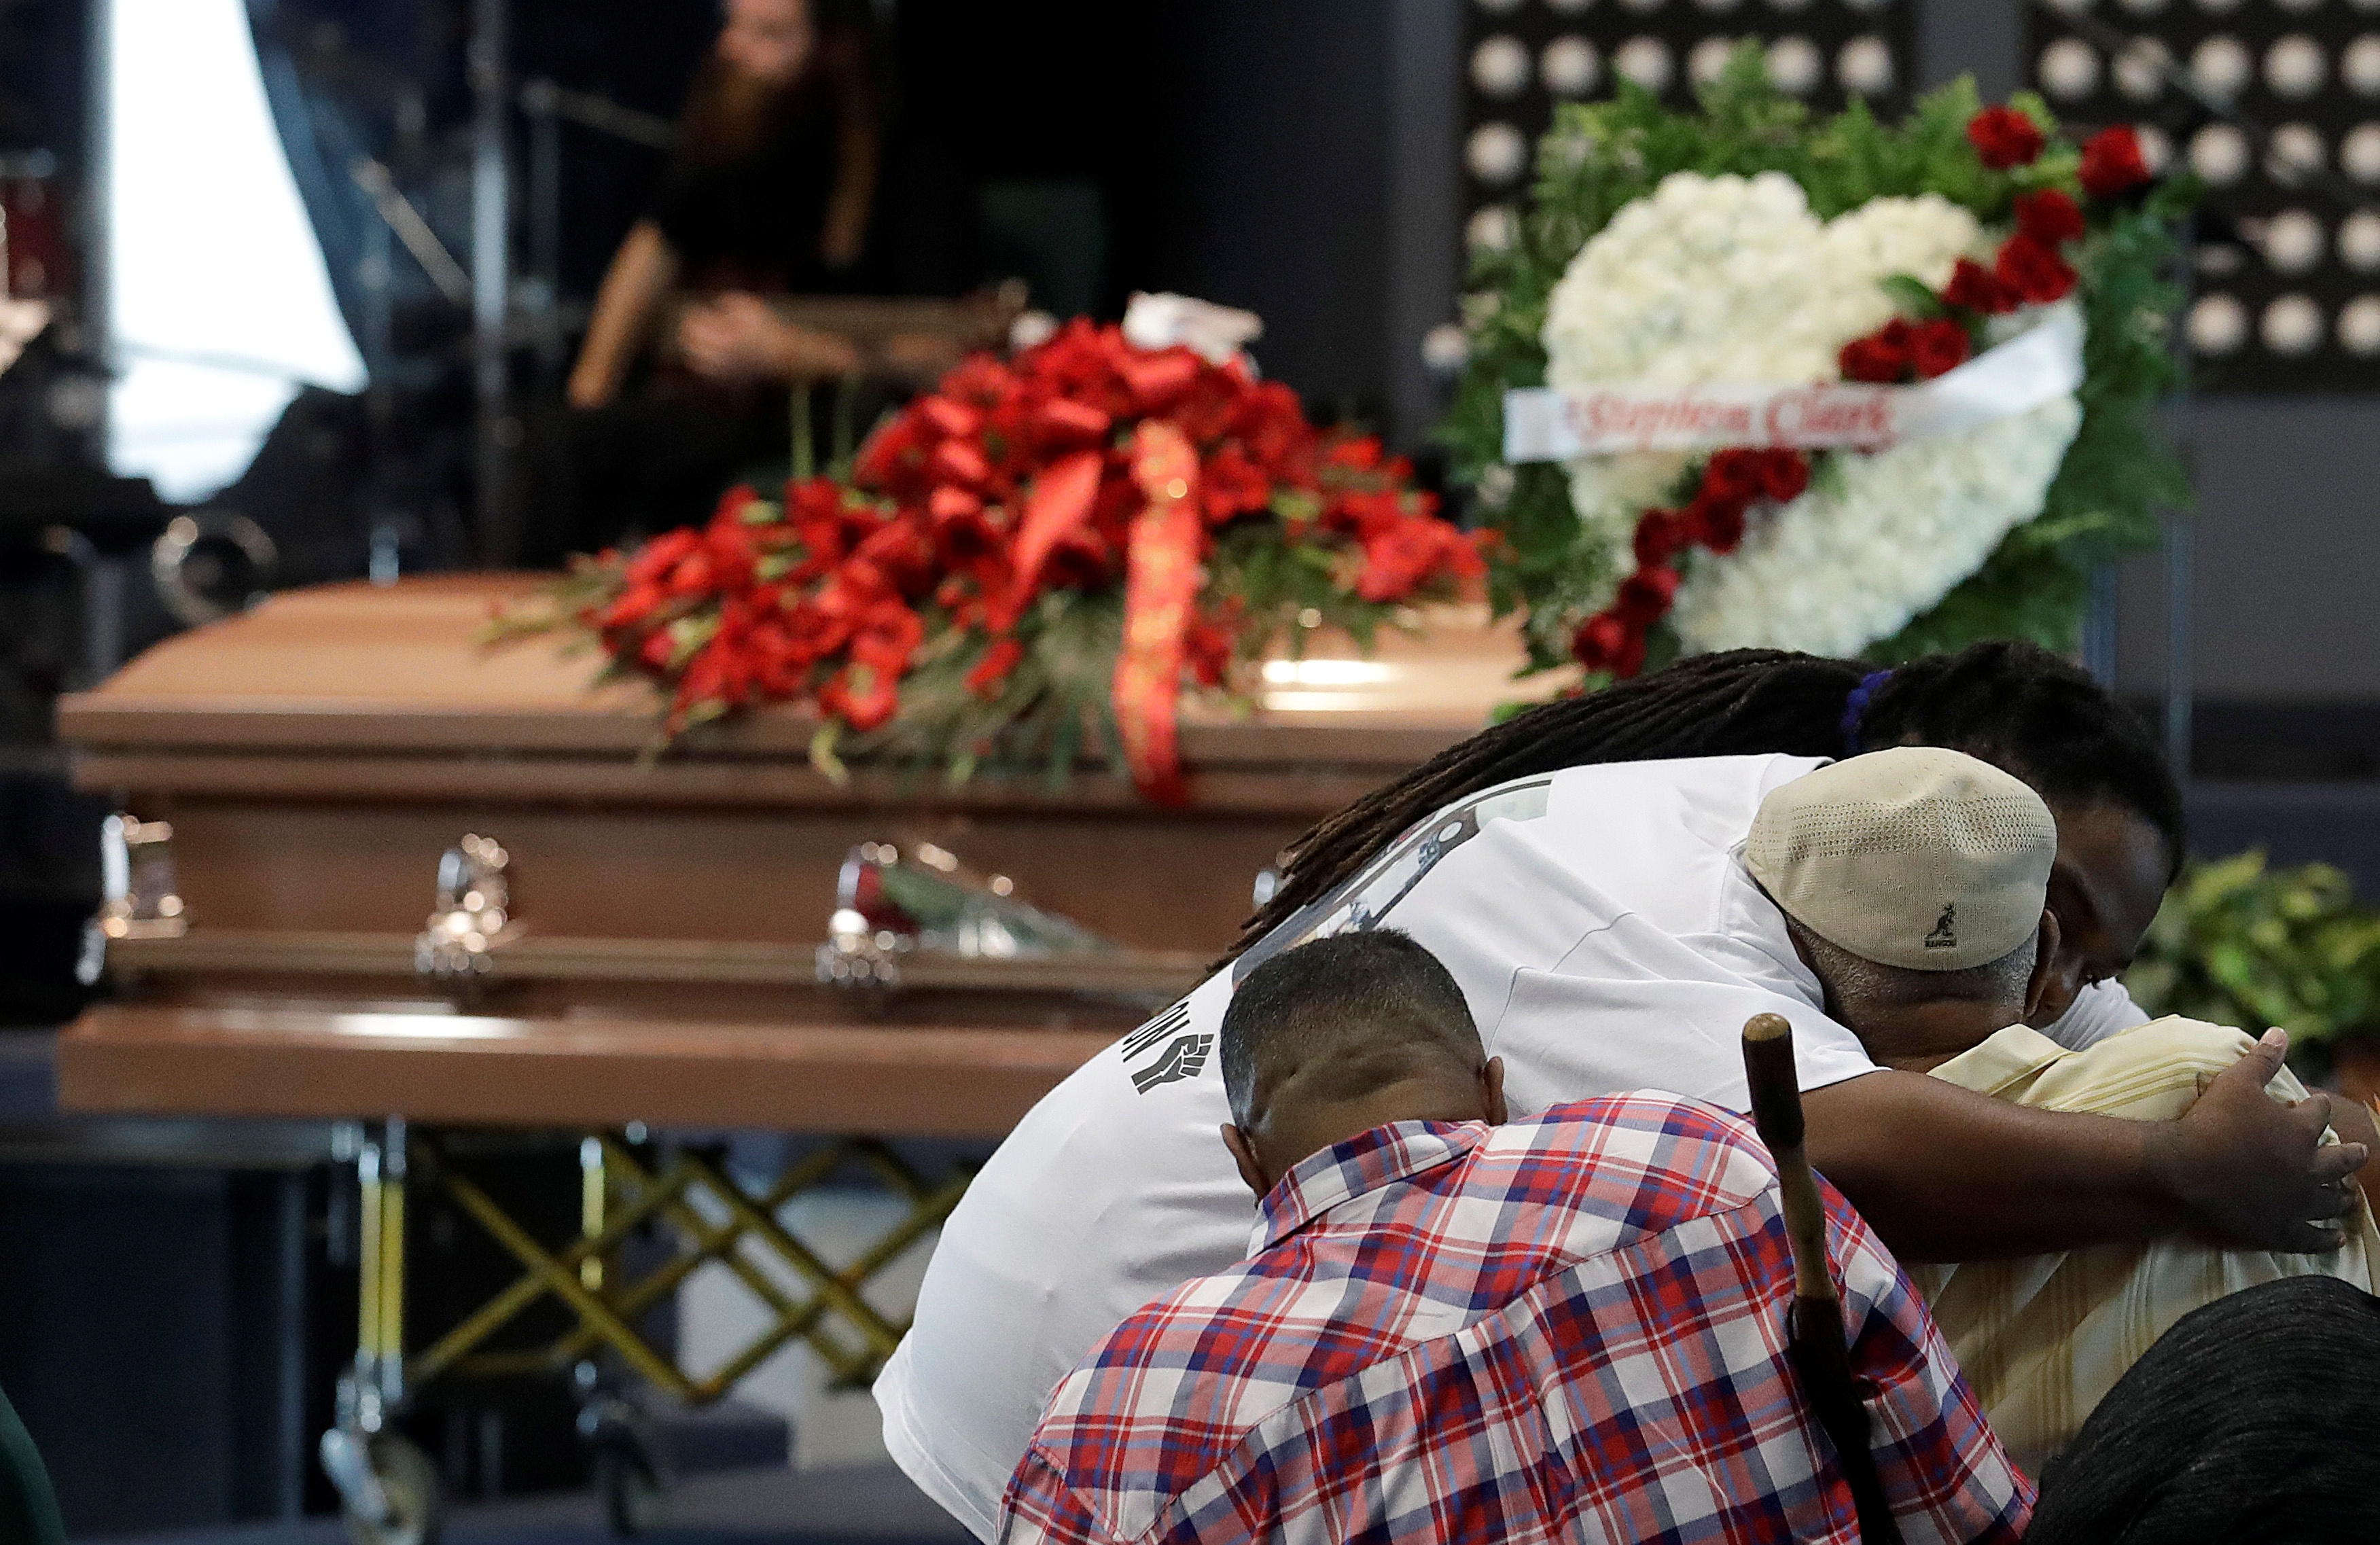 Mourners embrace before the funeral services for police shooting victim, Stephon Clark at Bayside Of South Sacramento Church, in Sacramento, California, March 29, 2018. Jeff Chiu/Pool via Reuters